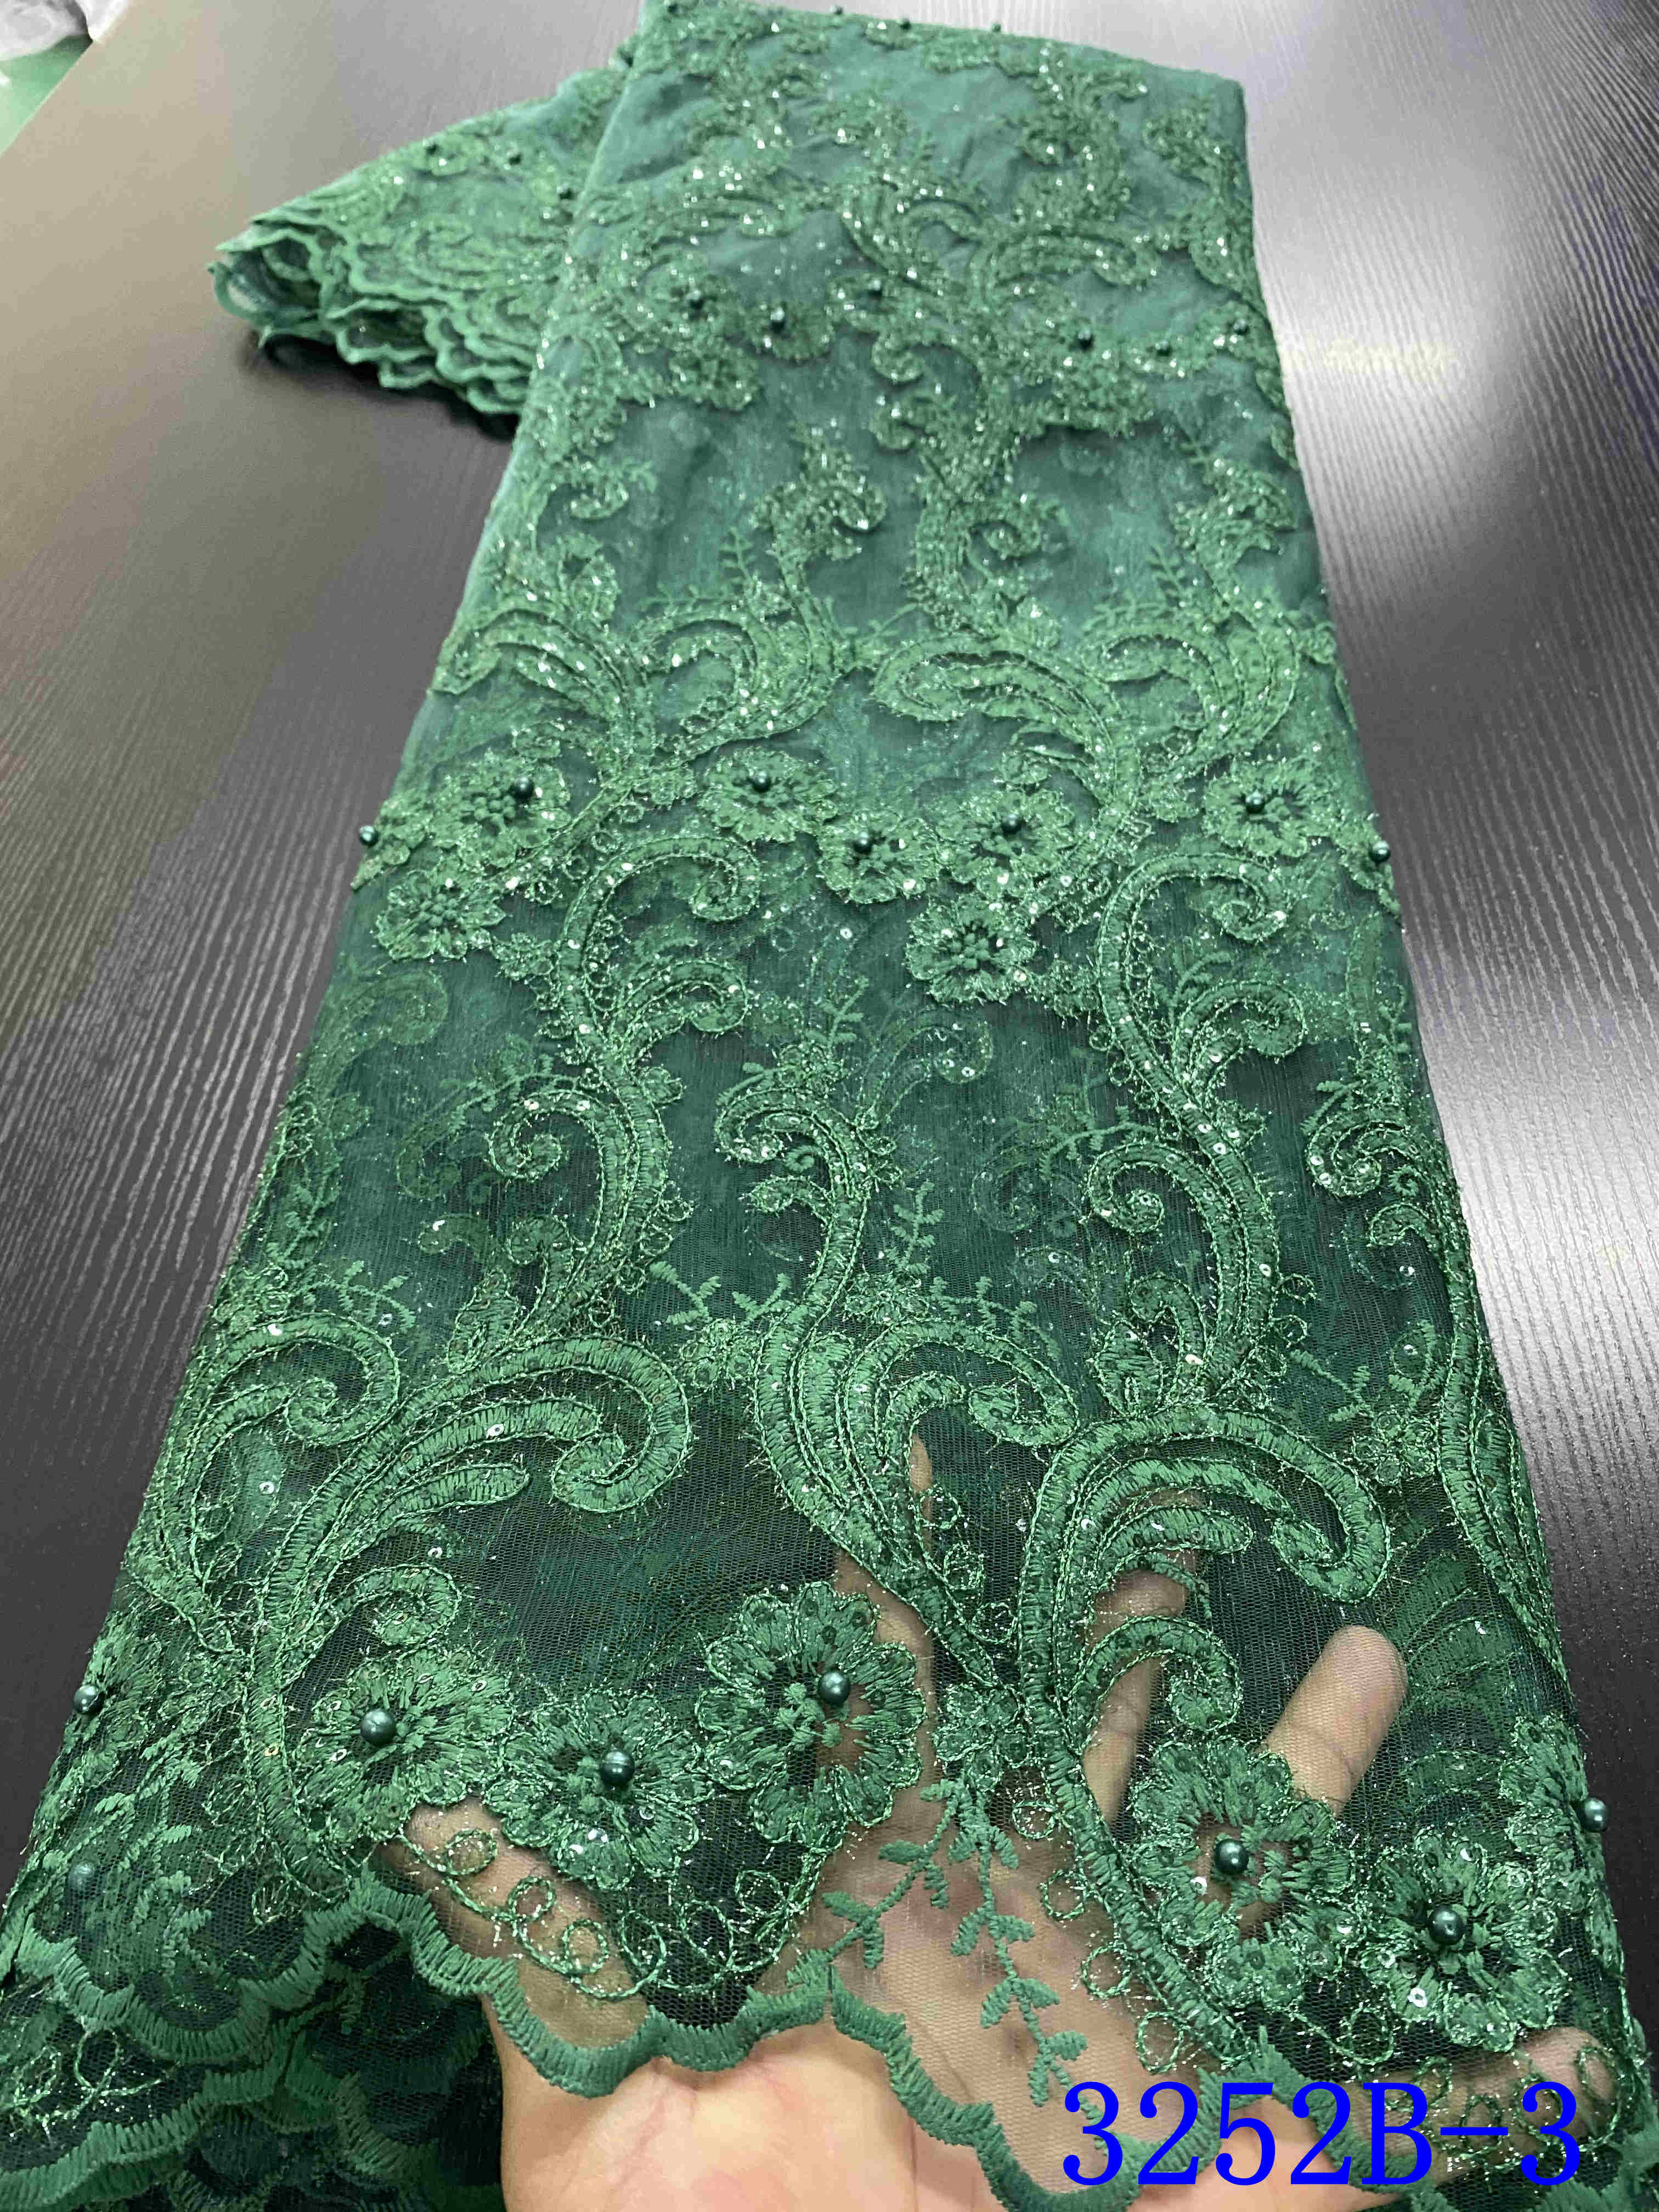 African Lace Fabric Embroidered Nigerian Lace Fabric Bridal 2020 High Quality French Tulle Lace Fabric For Women Dress YA3252B-3